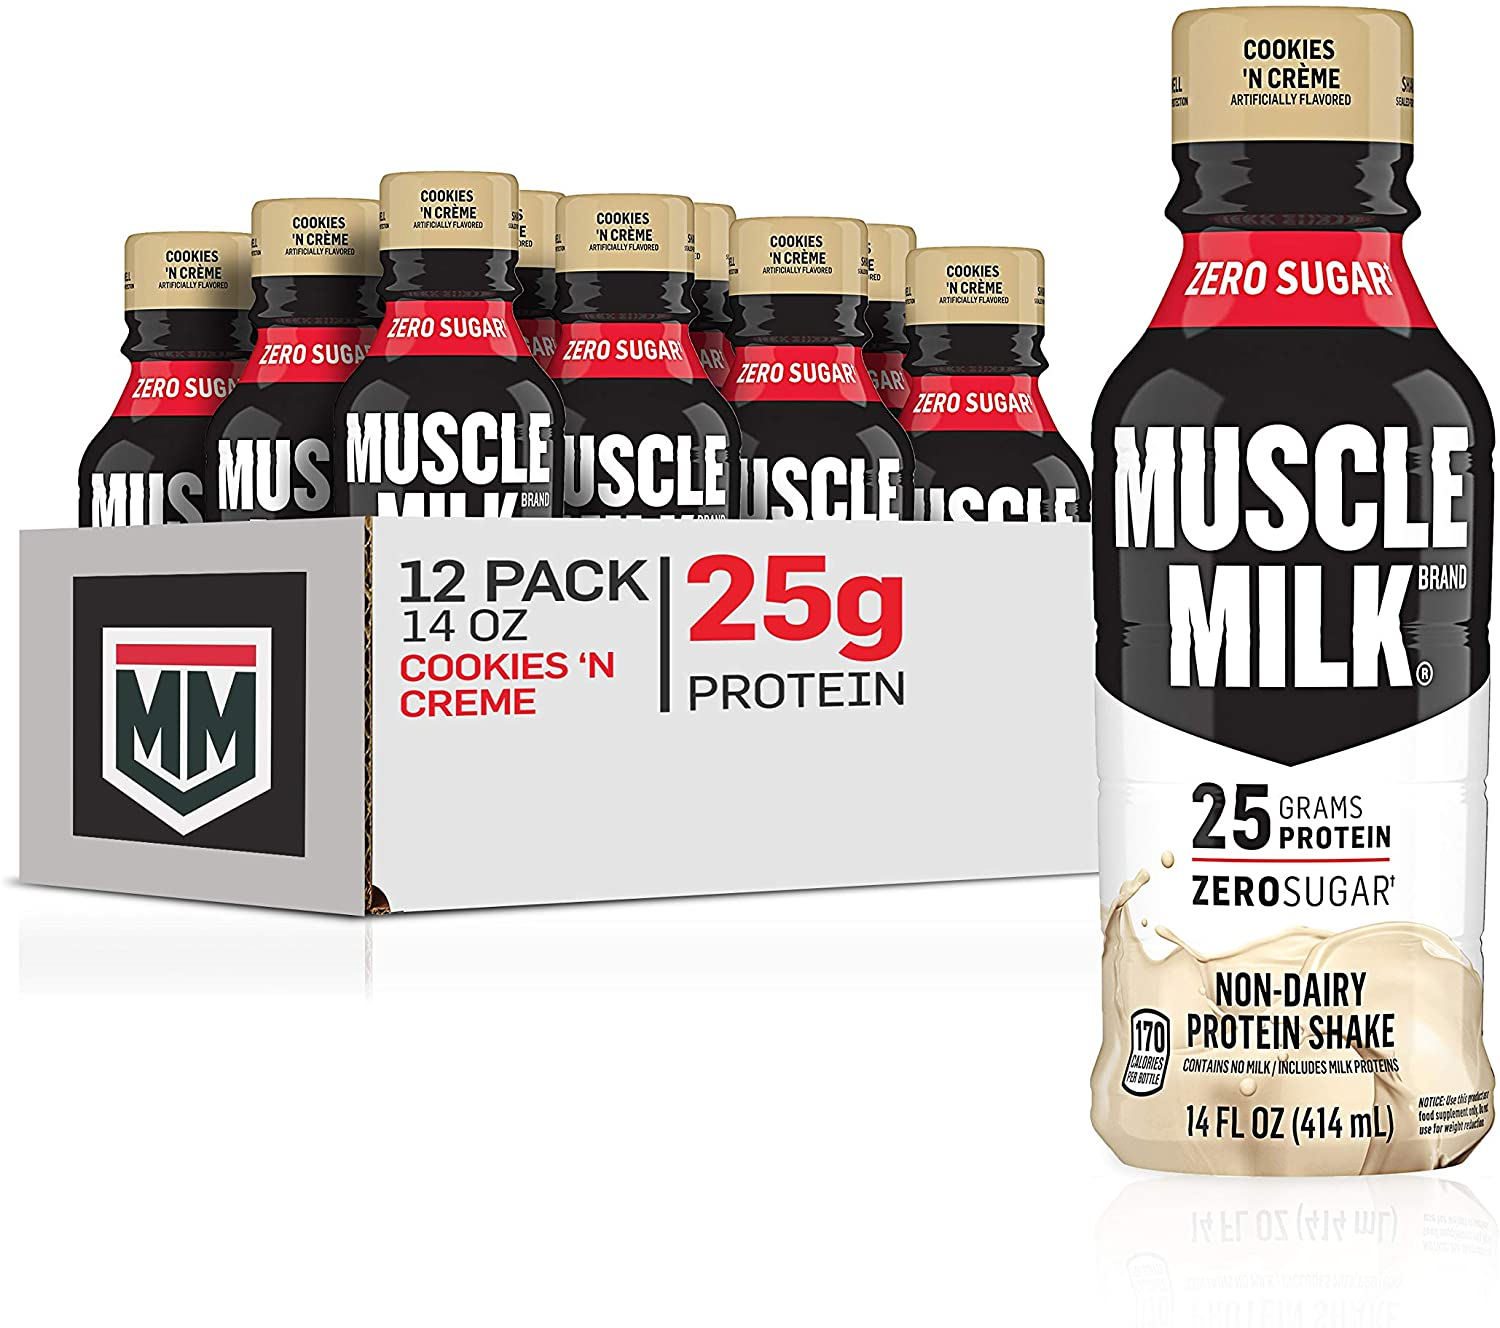 Muscle famous Milk Genuine Popular popular Protein Shake 25g Prot 'N Cookies Crème